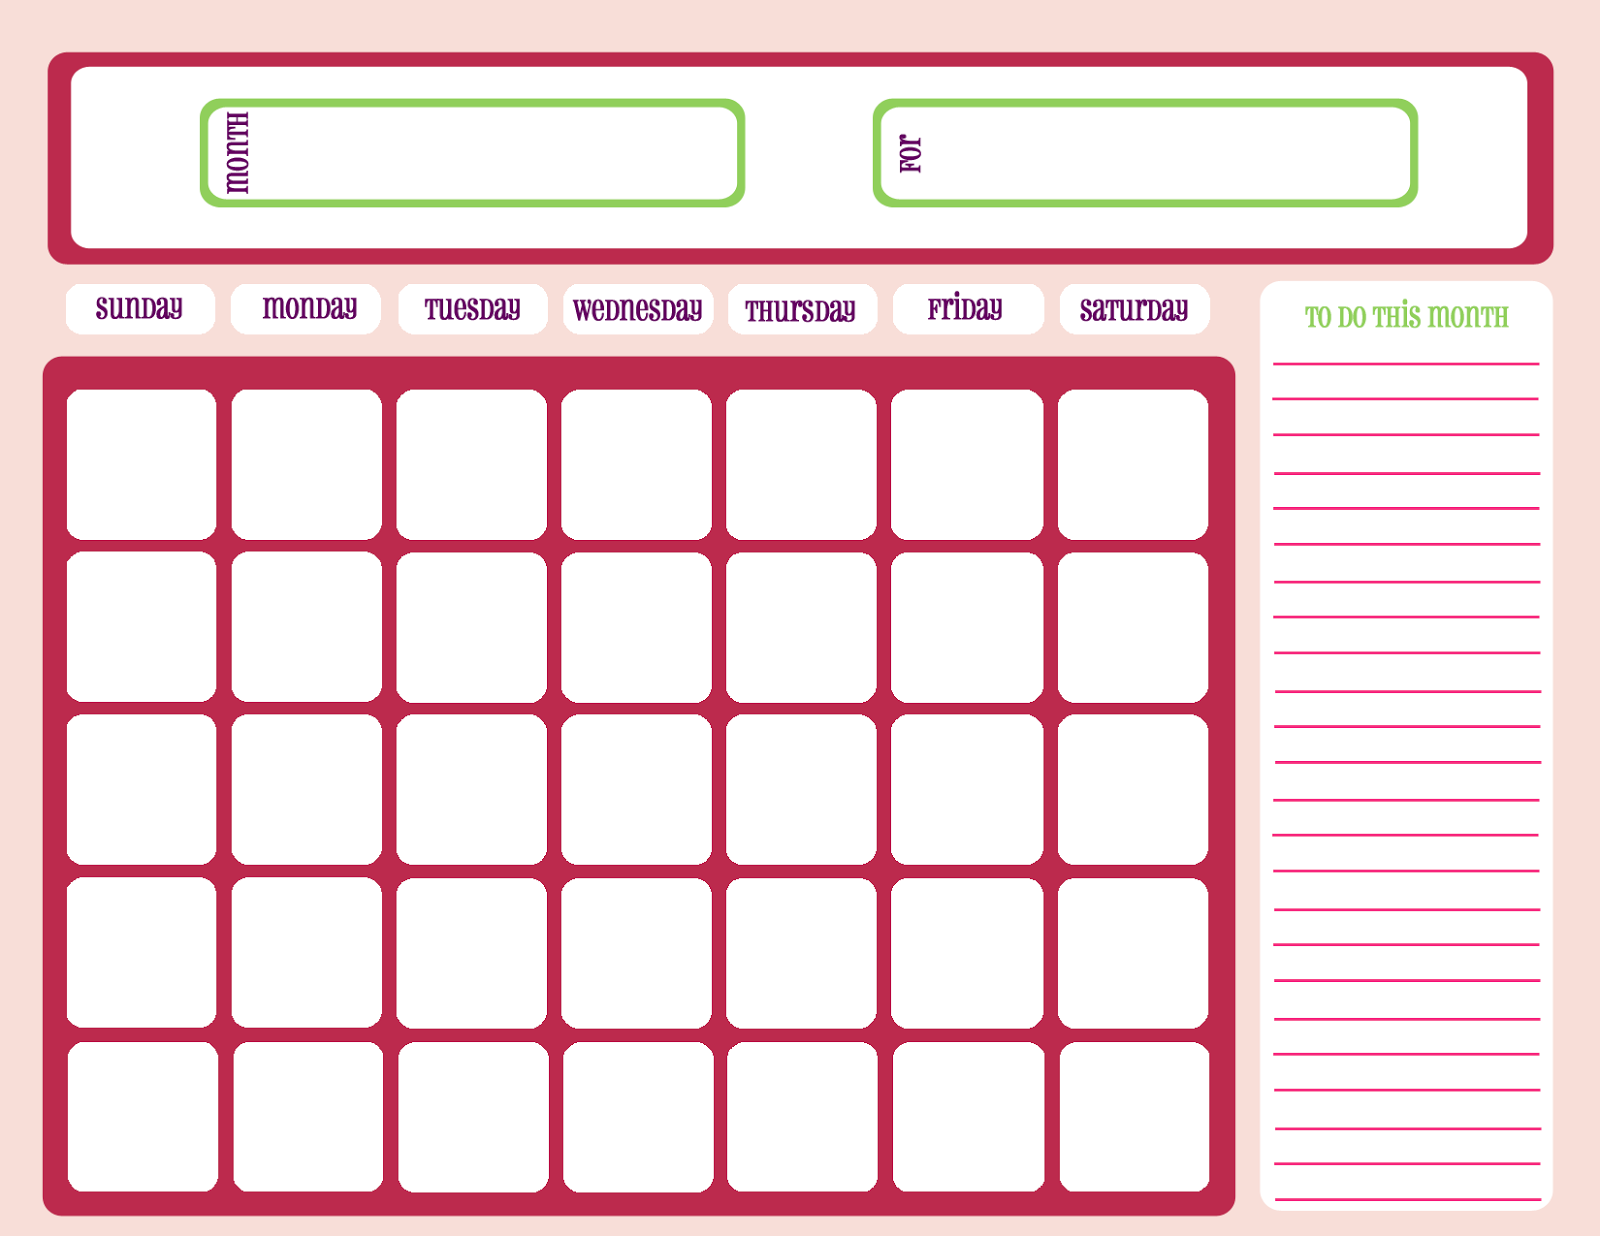 Printable Workout Calendar   Activity Shelter In Fitness Calendar For Kids May 2021